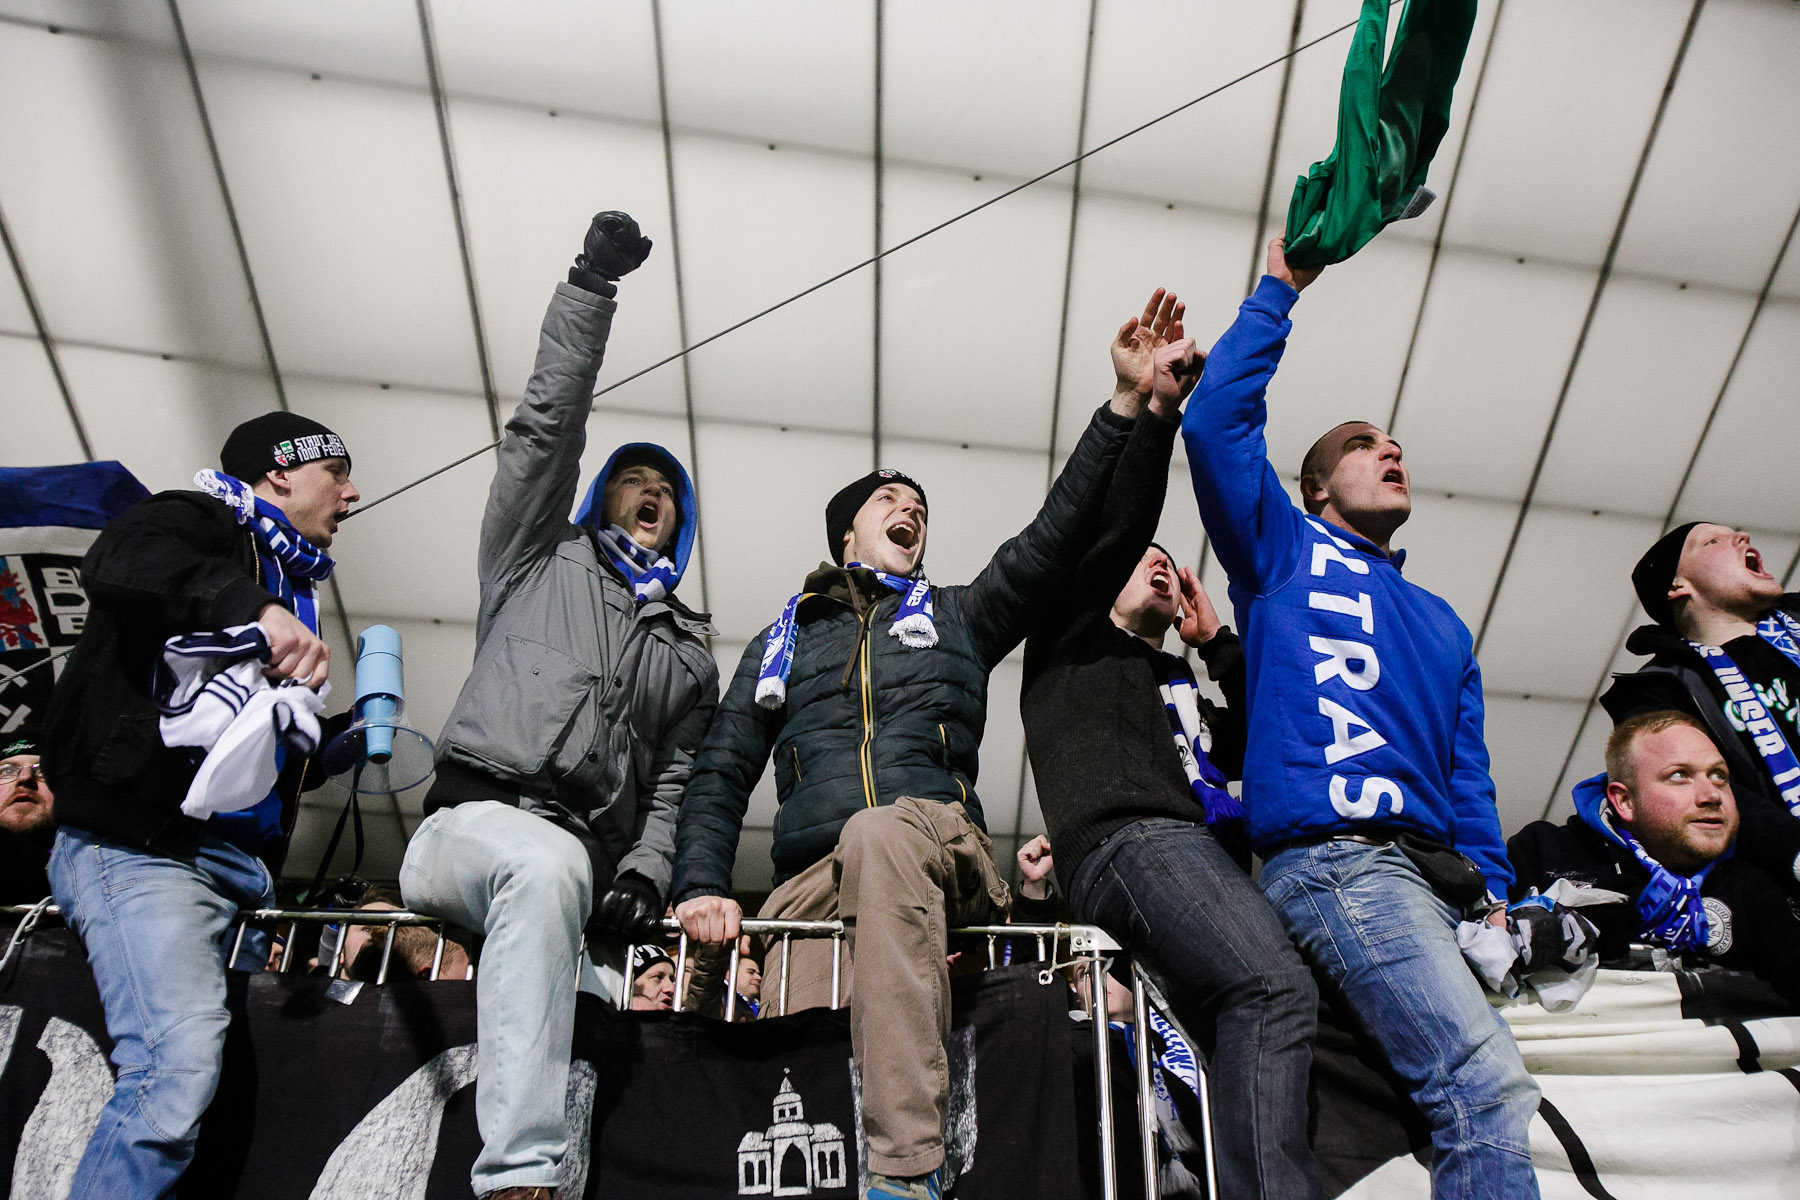 FC Schalke 04 fans cheer during the UEFA Champions League Group G match between FC Schalke 04 and NK Maribor on December 10 in Maribor, Slovenia.